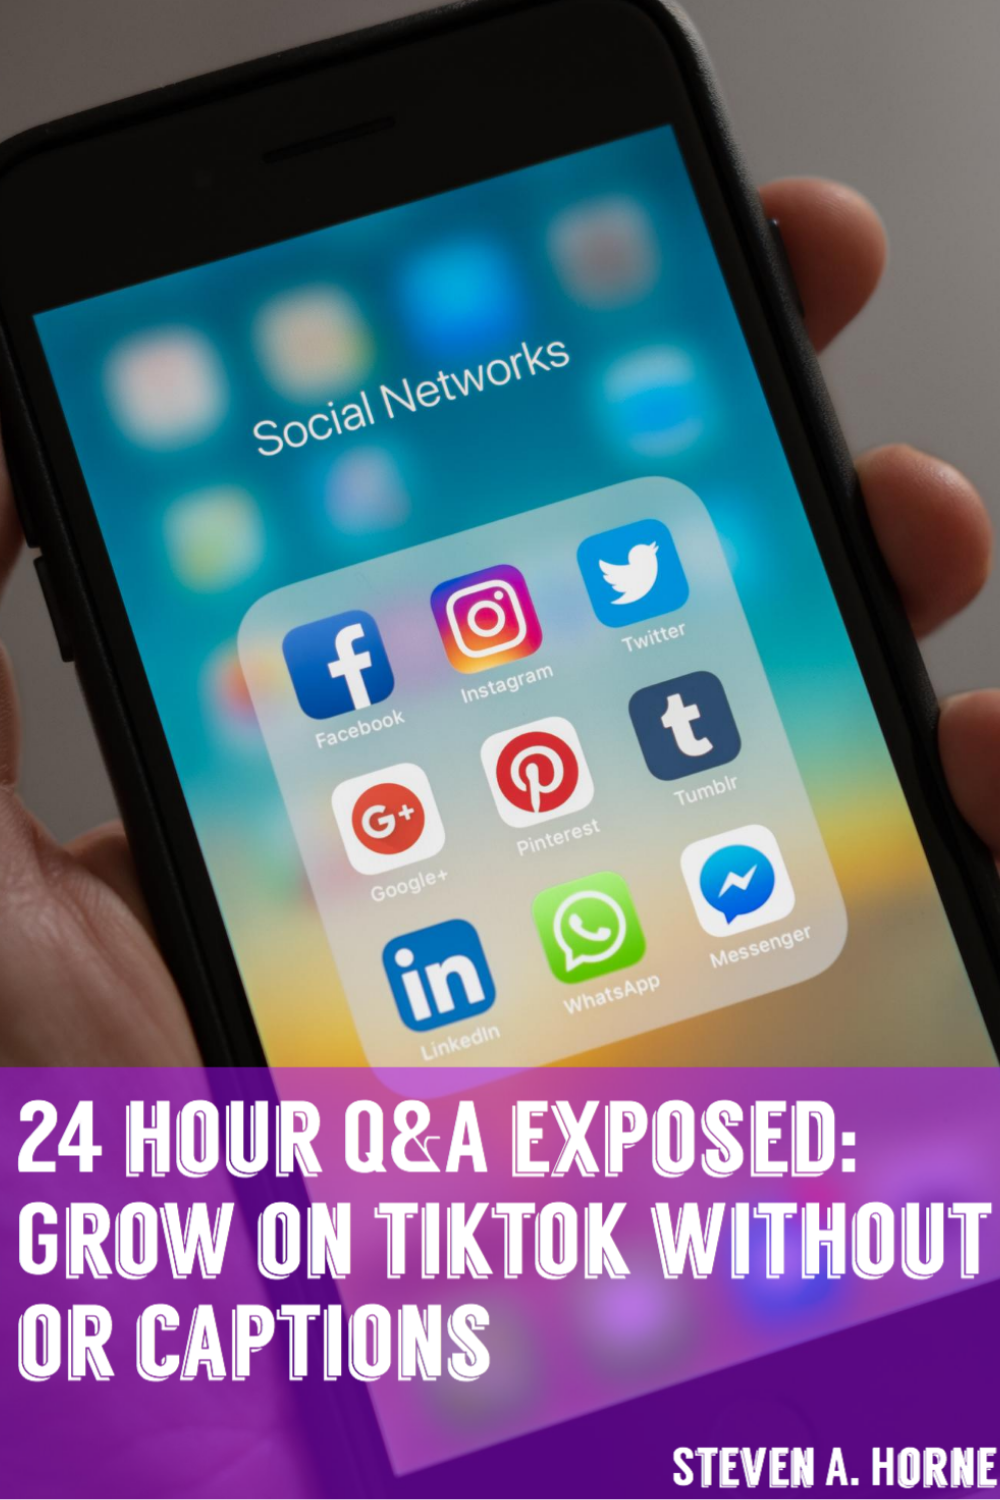 How To Grow On Tiktok Without Hashtags Or Captions Social Media Pinterest For Business Marketing Plan